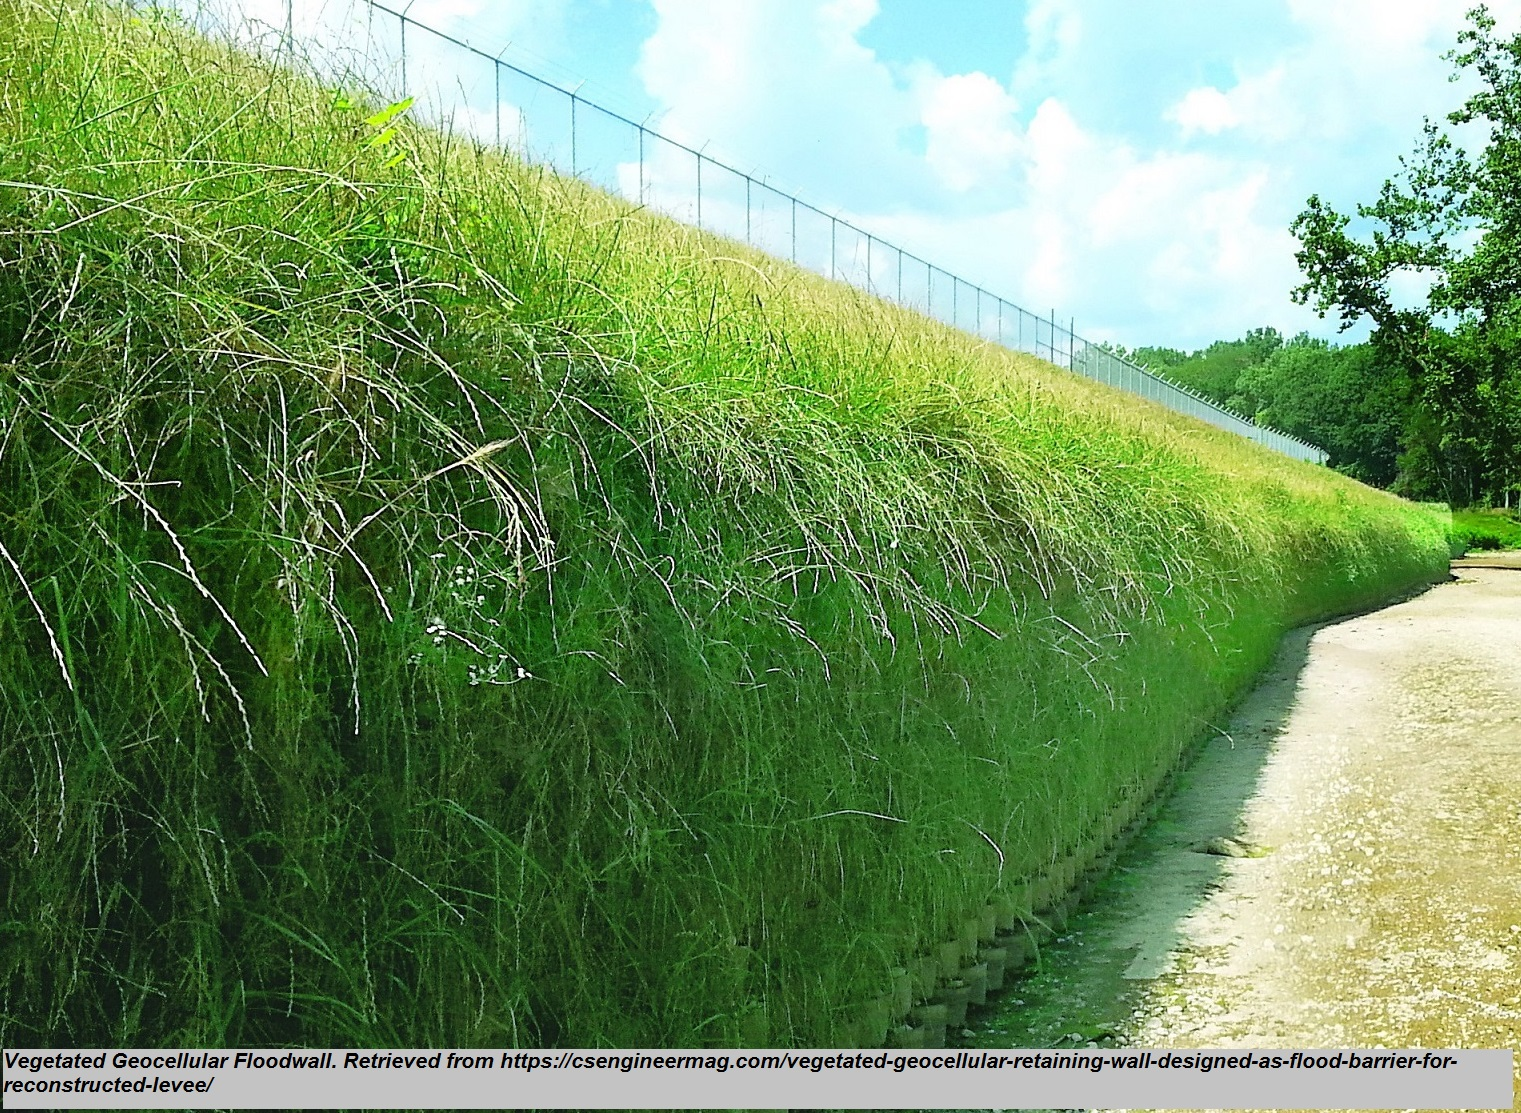 """Vegetated Geocellular Floodwall<br><span style=""""font-family: arial, helvetica, sans-serif; font-size: 12pt; color: #4a4a4a;"""">This permanent flood wall is designed as a gravity structure without reinforcement that is applied to a change in grade application. The Geocellular wall is an alternative to a levee or rip rap that will produce similar level of flood protection.</span>"""